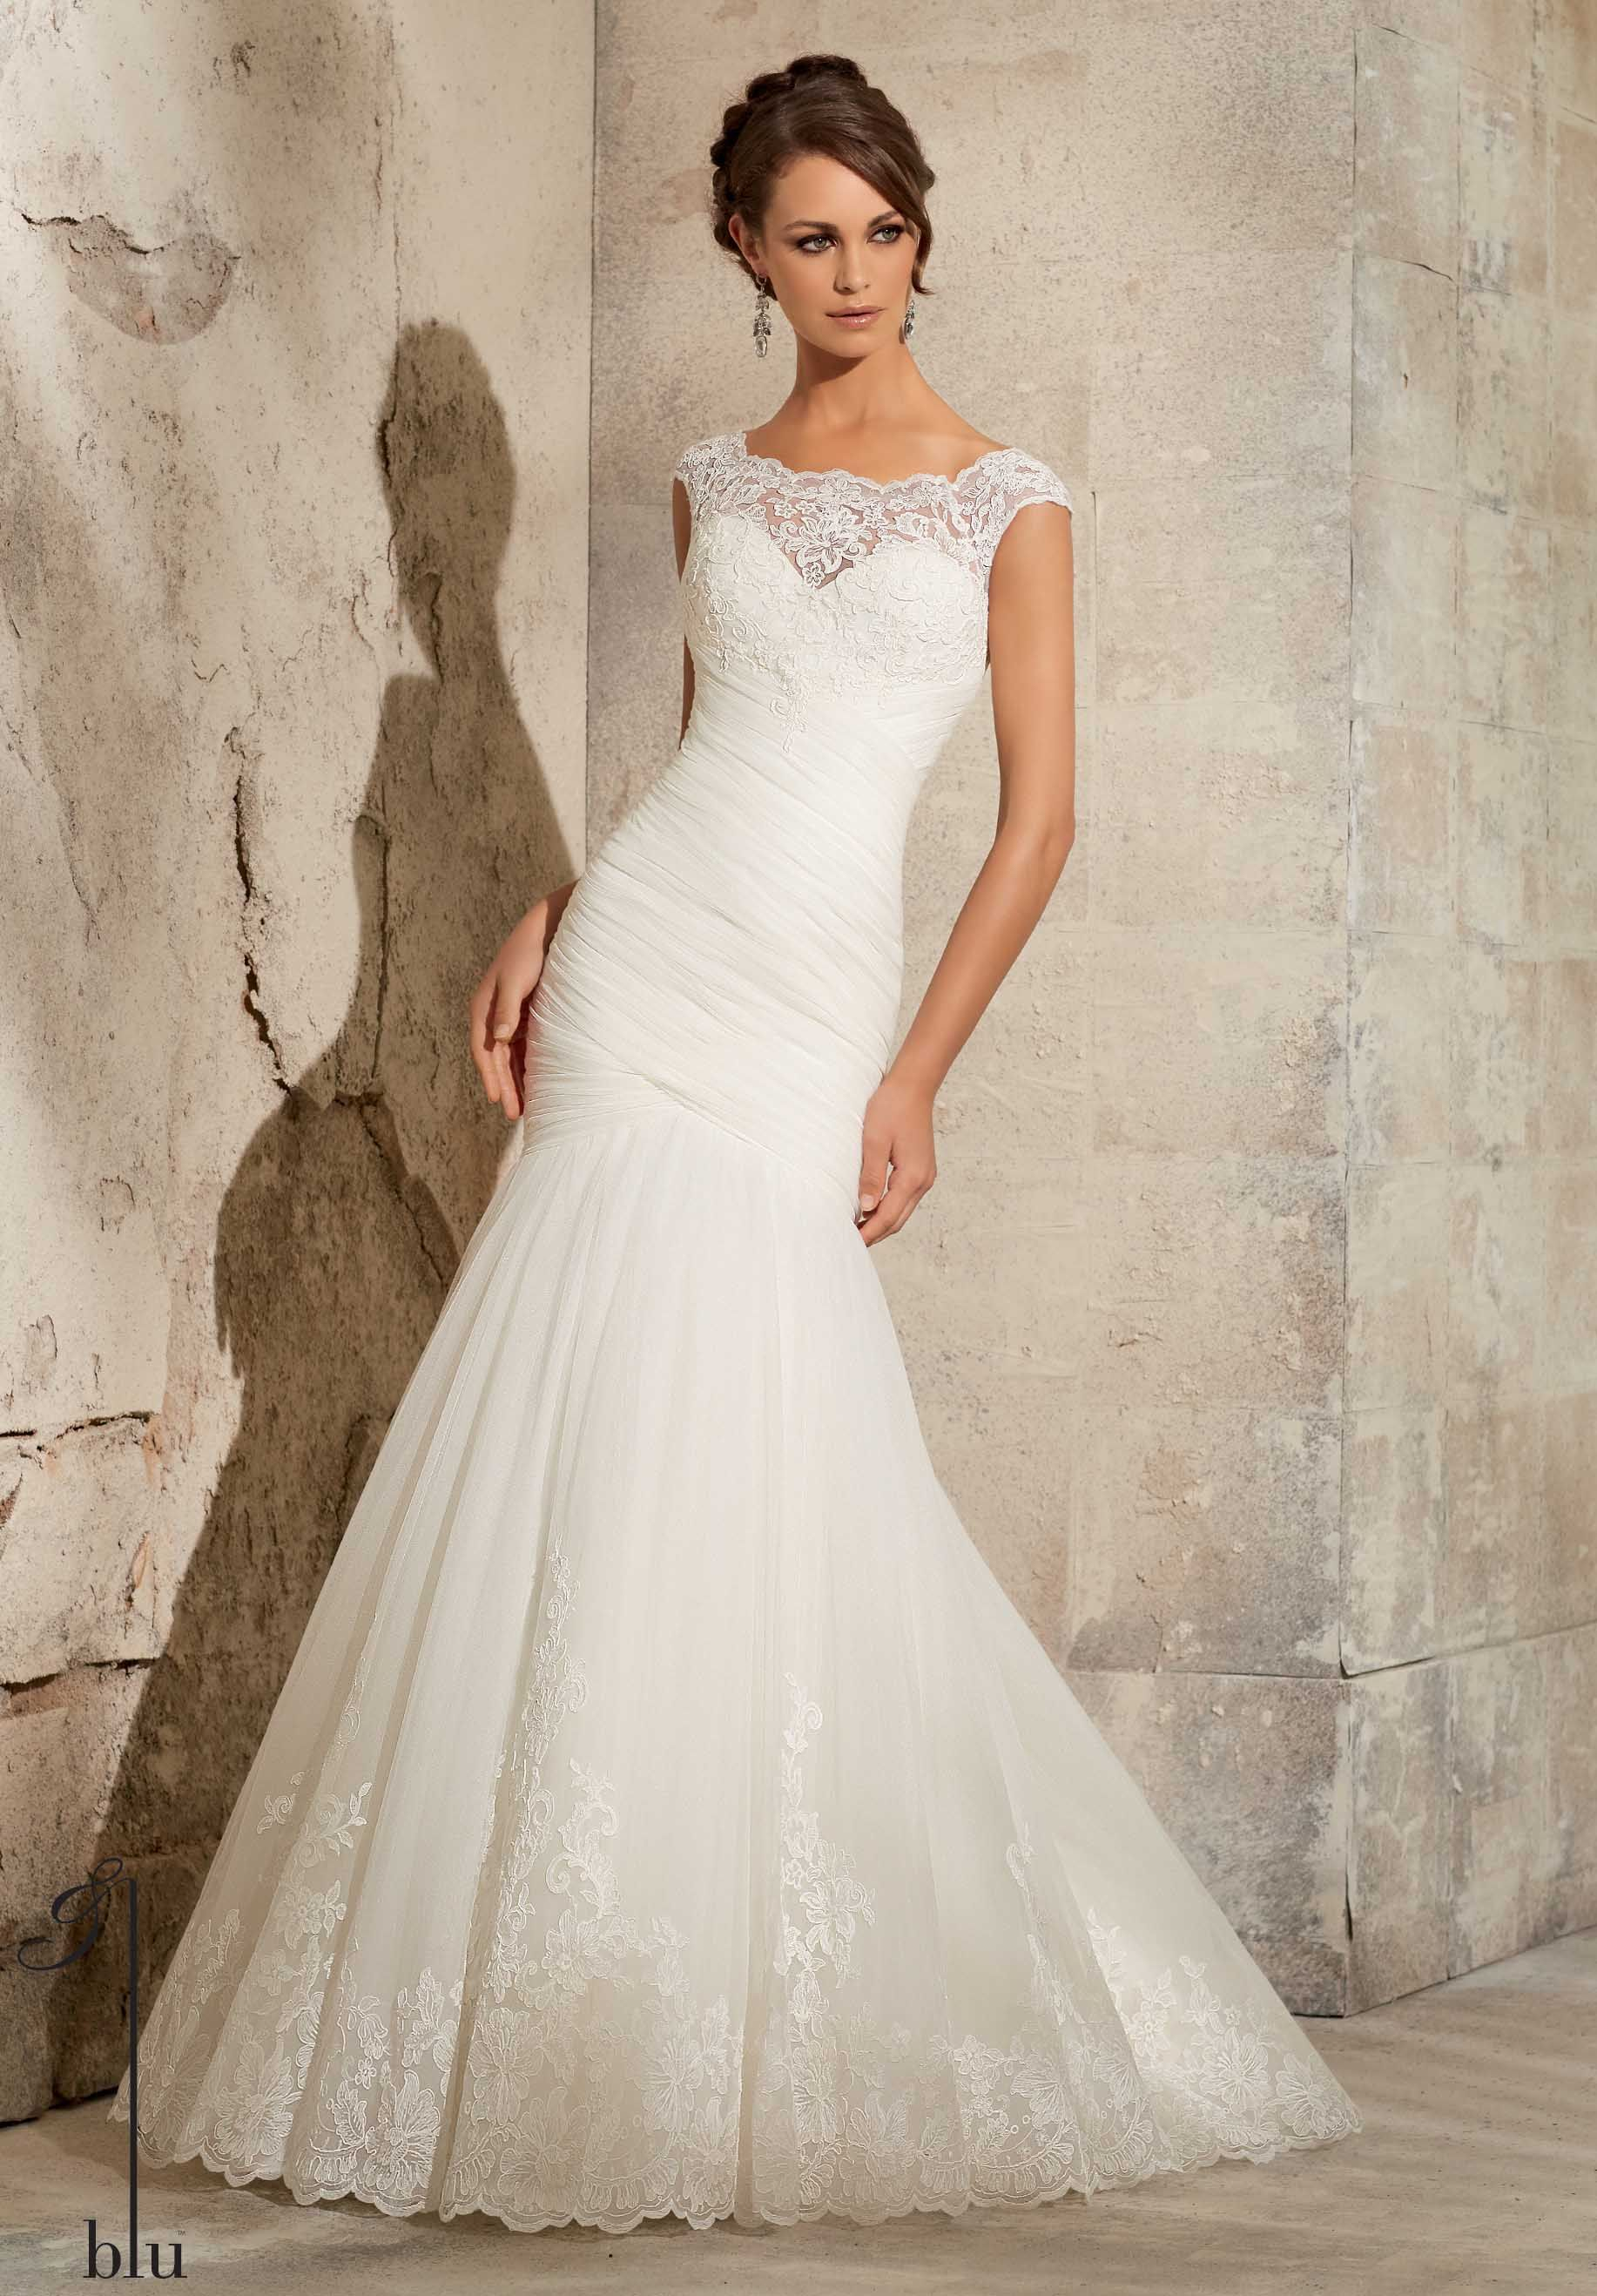 Mori Lee By Madeline Gardner Blu Collection 2015 Mori Lee